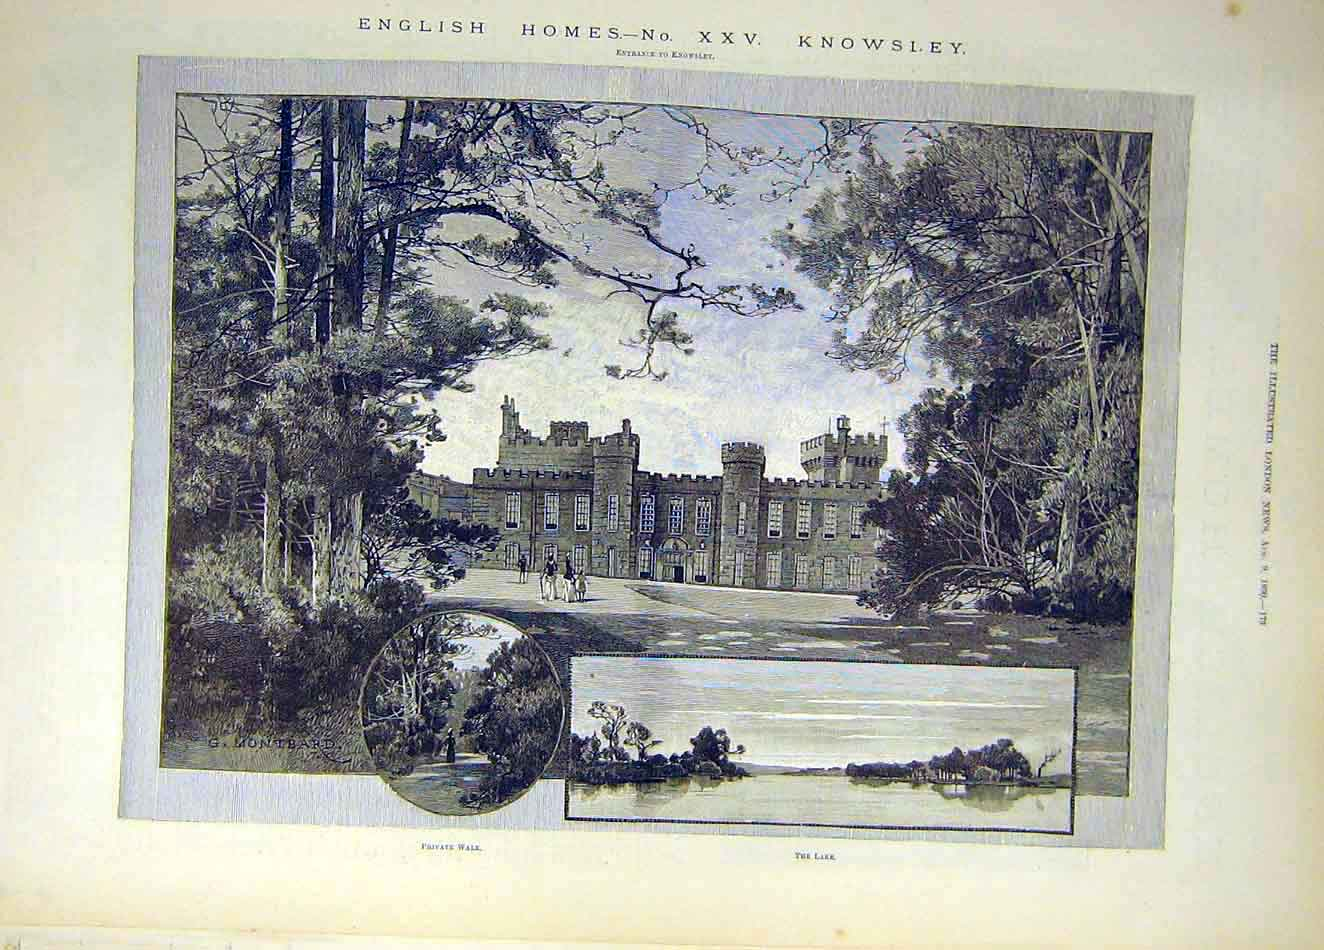 Print 1890 Montbard English Homes Knowsley Building Lake 737921 Old Original